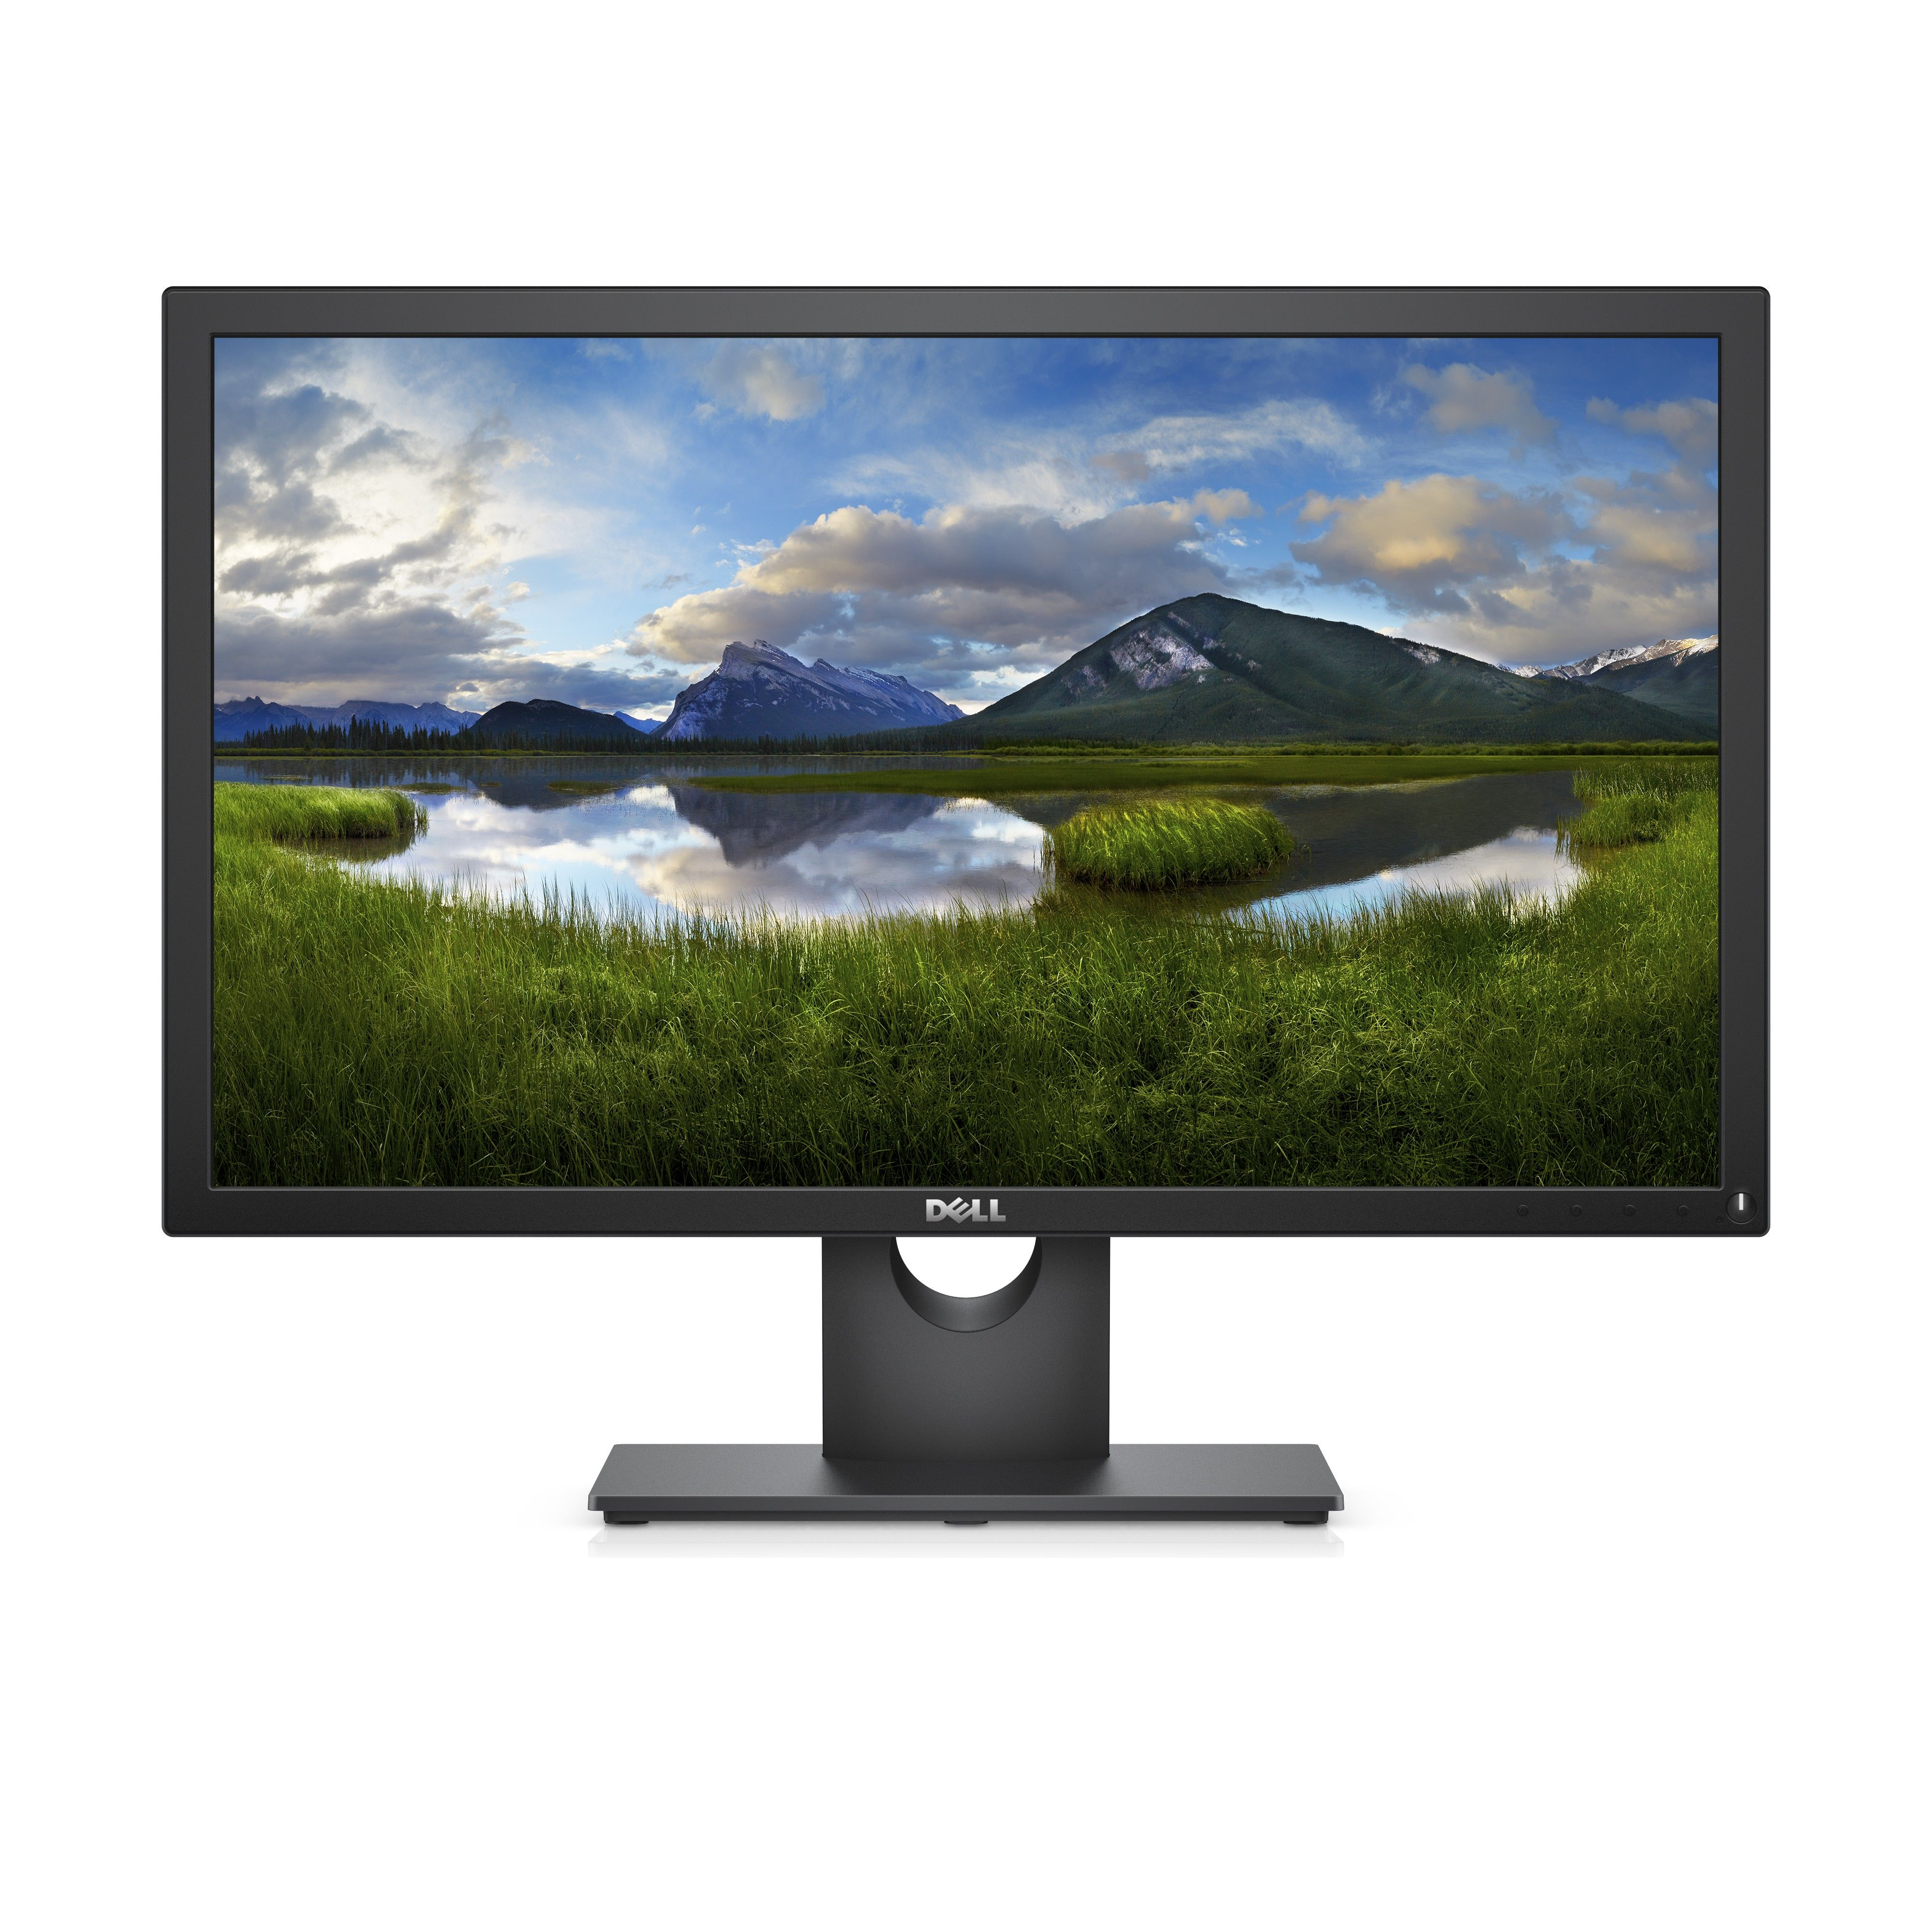 Dell E Series E2318h 23 Full Hd Led Matt Flat Black Computer Monitor 165 00 Dell Https Bestbuycyprus Com Pc Mon With Images Monitor Lcd Monitor Cool Things To Buy